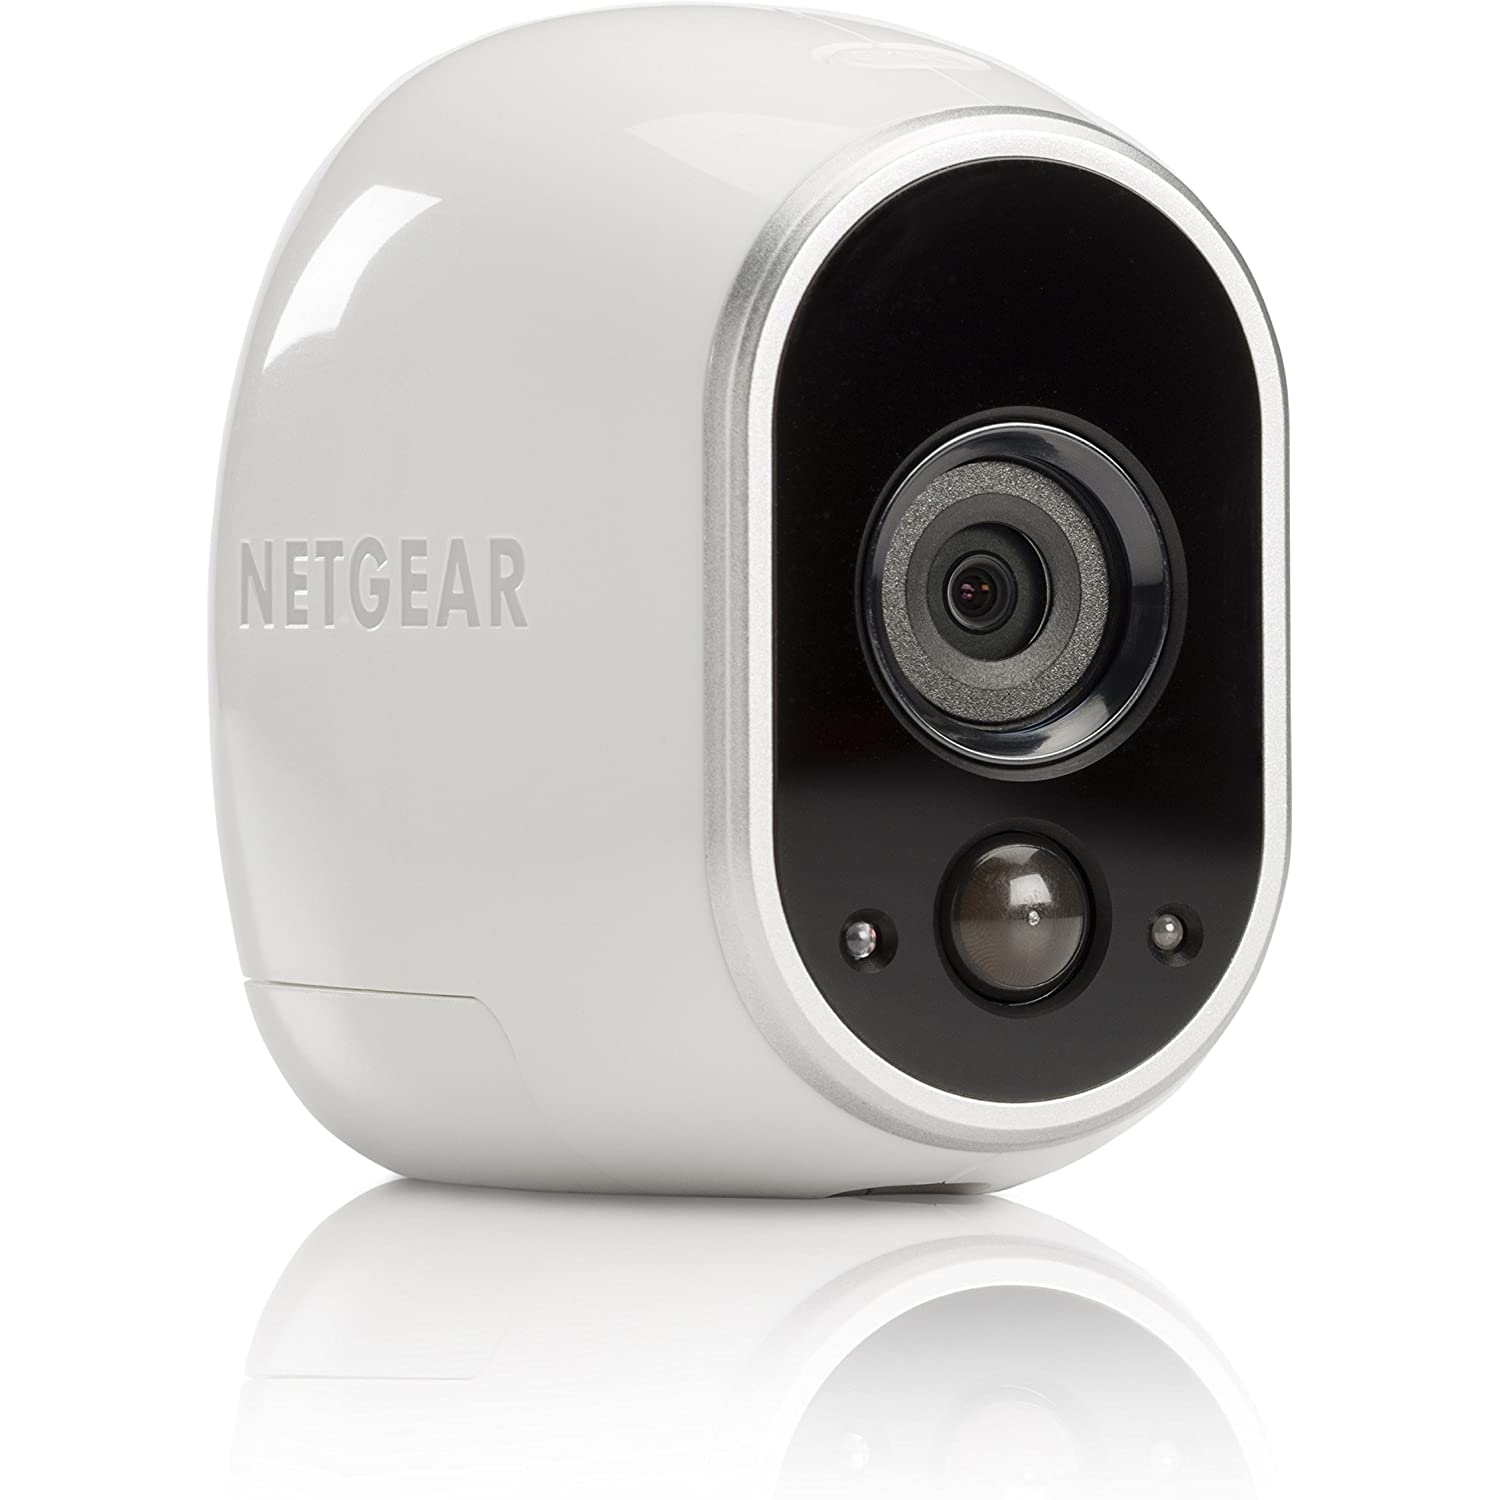 NETGEAR Arlo VMC3030-100EUS Smart Home